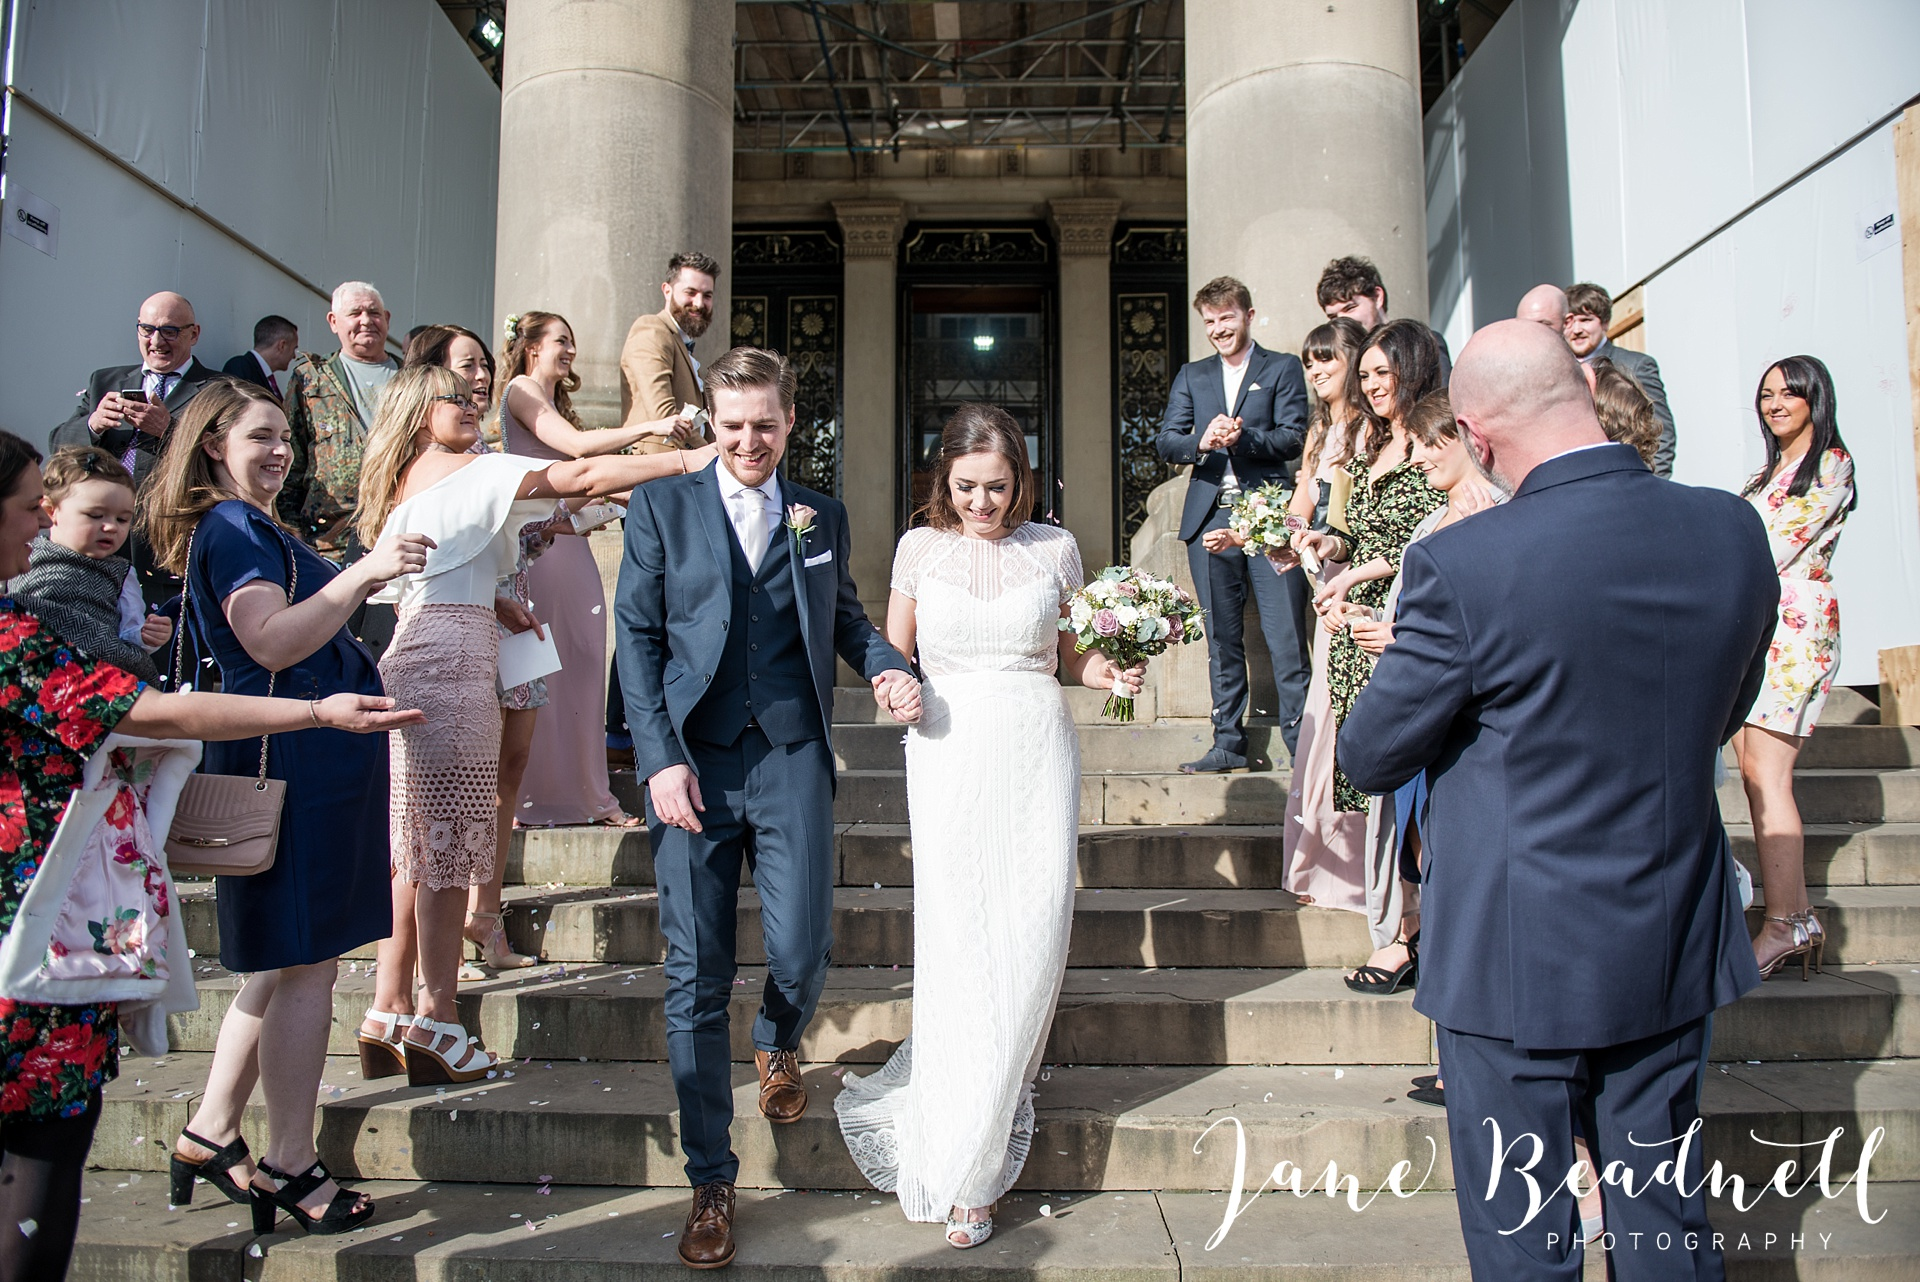 Wedding photography Cross Keys Leeds Wedding Jane Beadnell Photography_0044